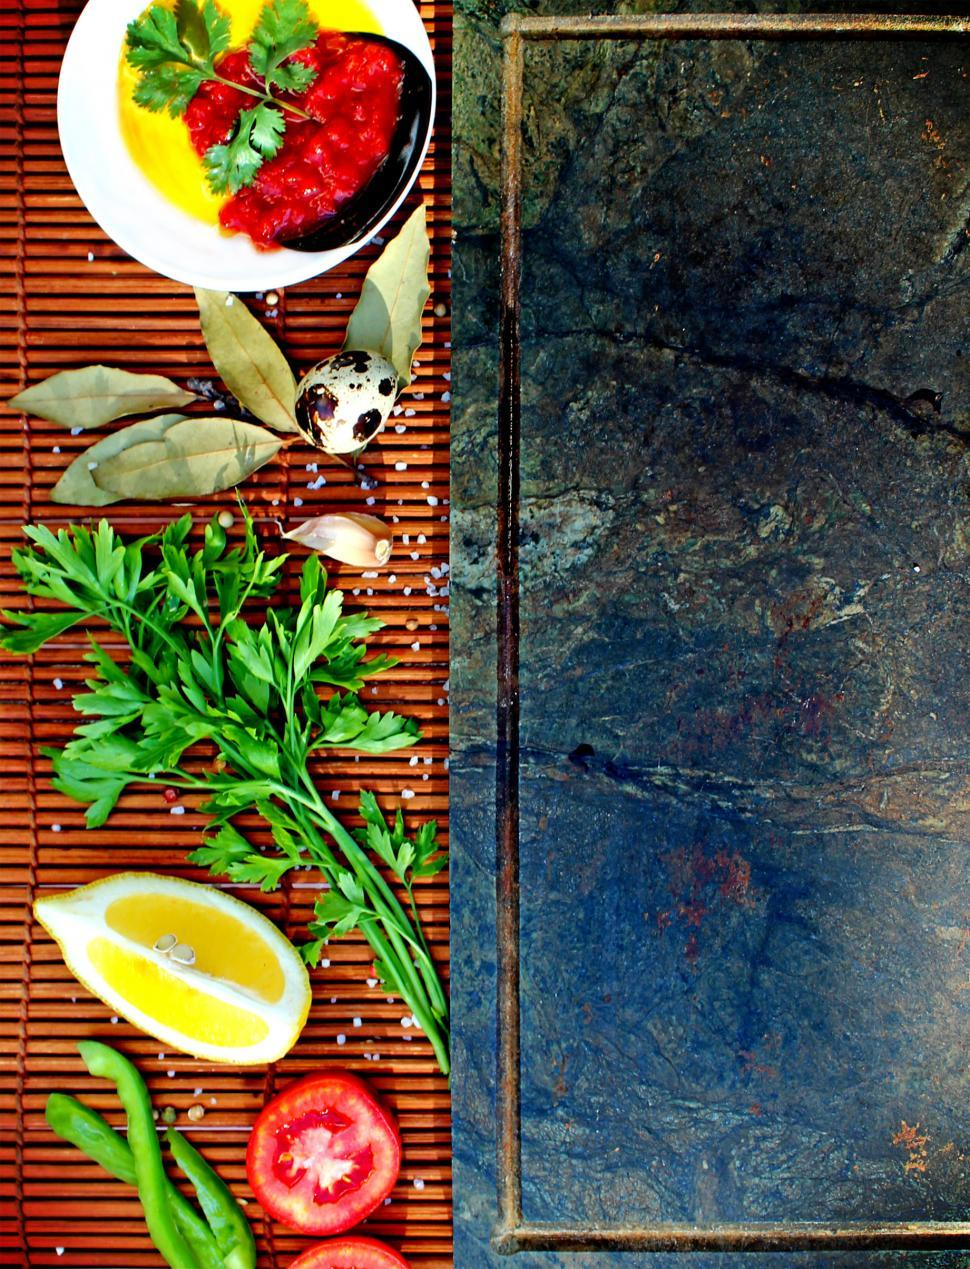 Download Free Stock HD Photo of Basic mediterranean style cooking ingredients Online